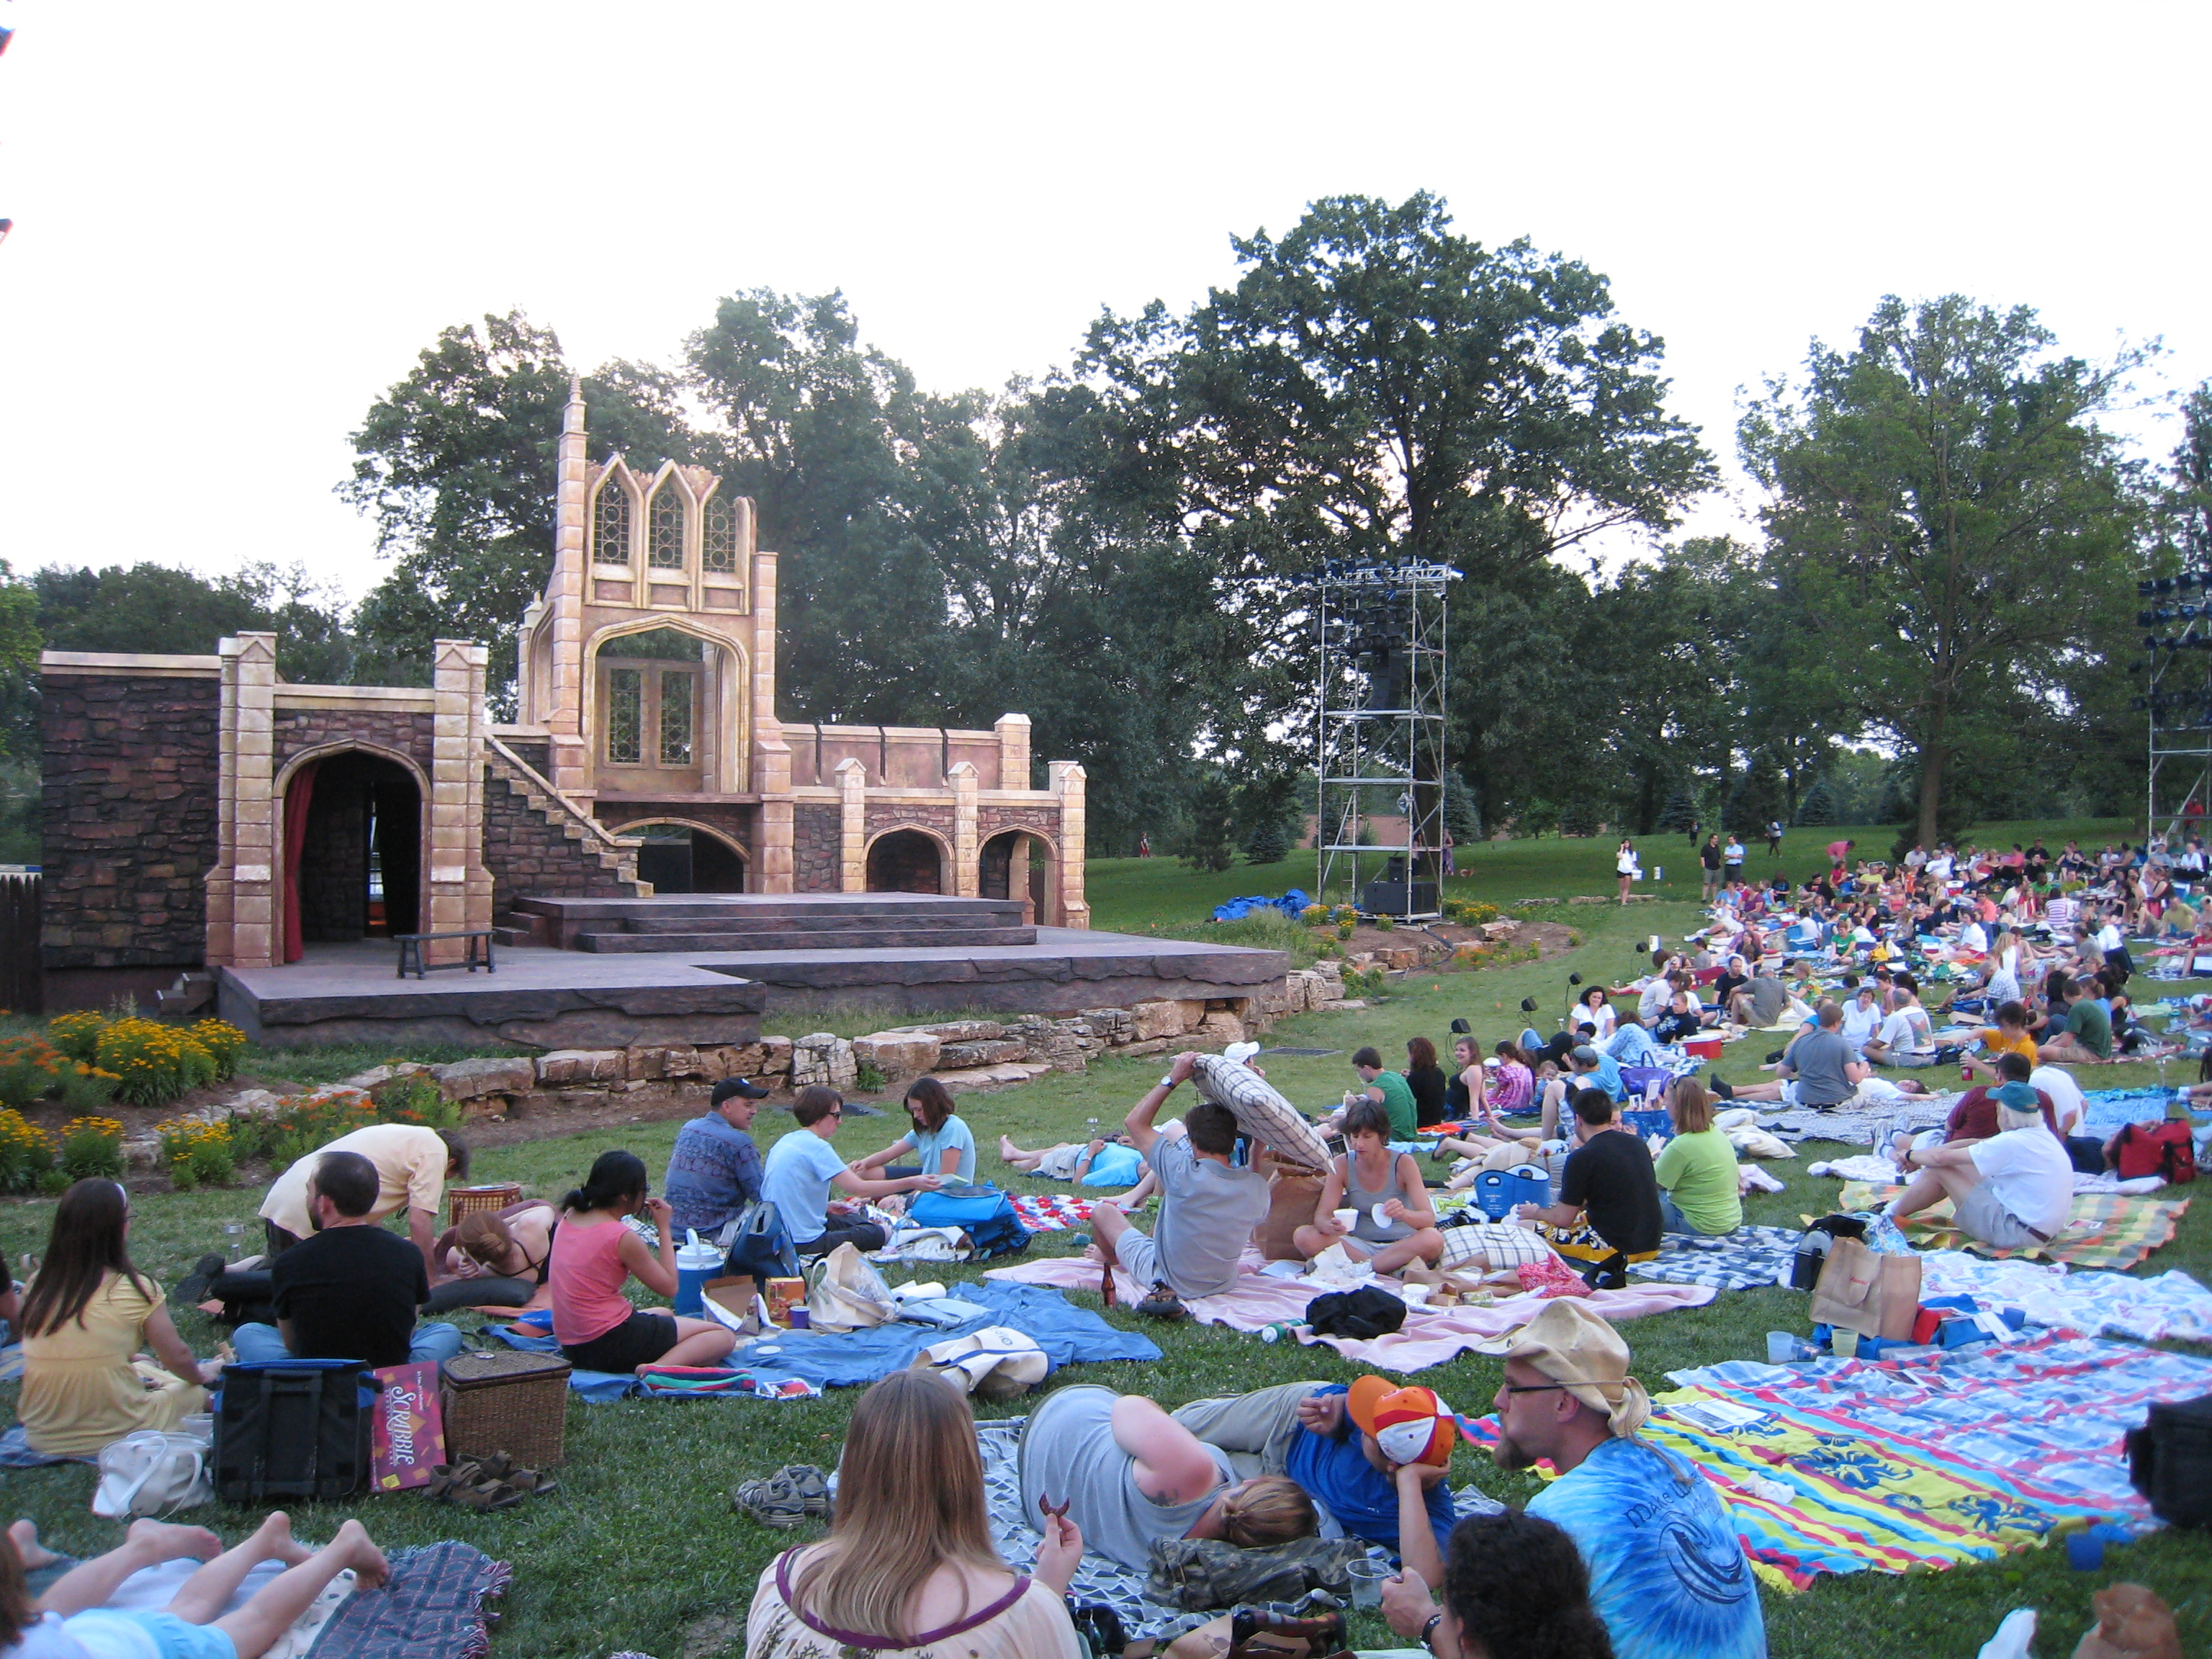 Shakespeare Festival St. Louis blanket seating and stage